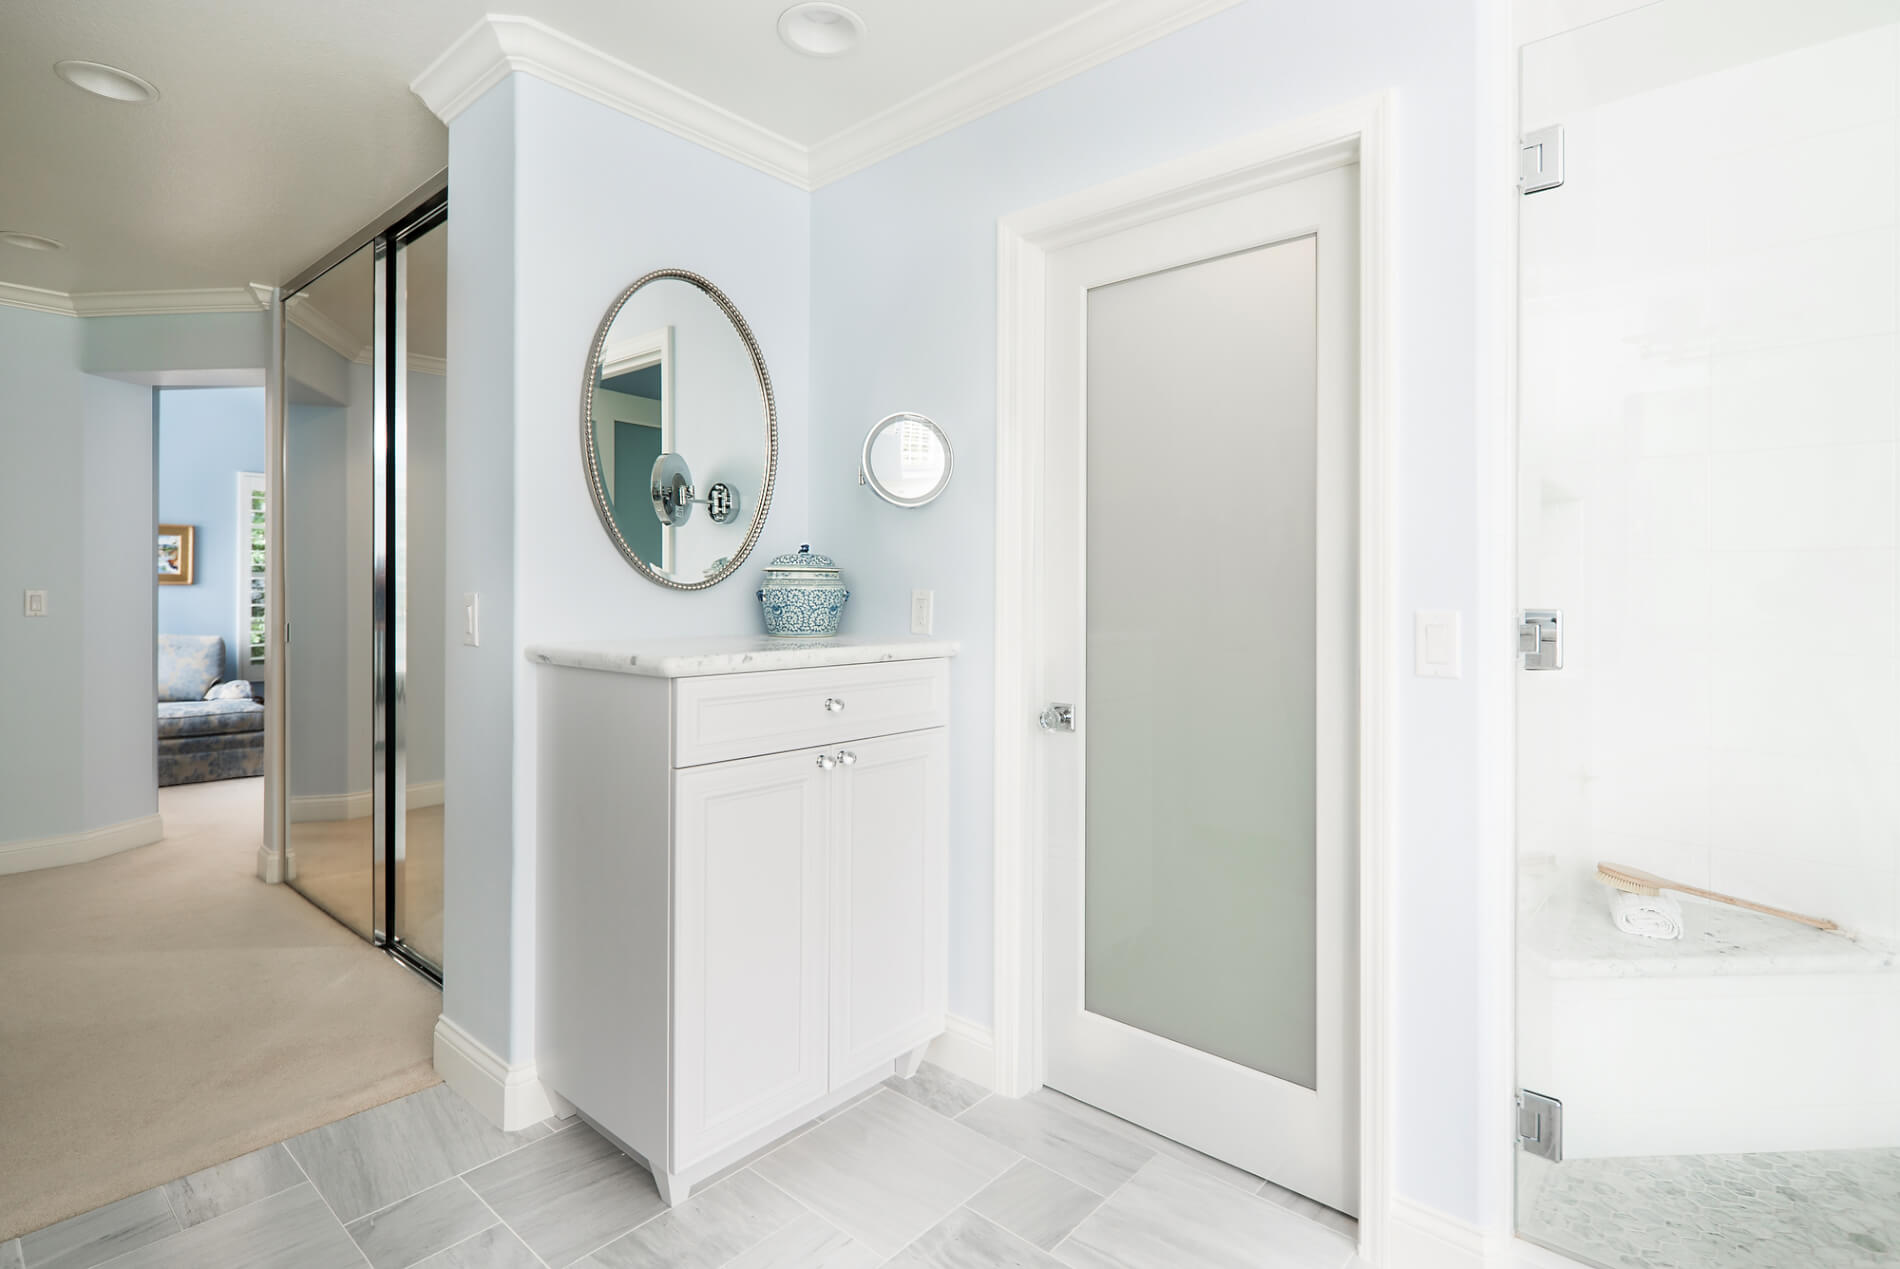 Bathroom Remodeling Costs, Kitchen Remodeling Costs, Room Addition Contractors